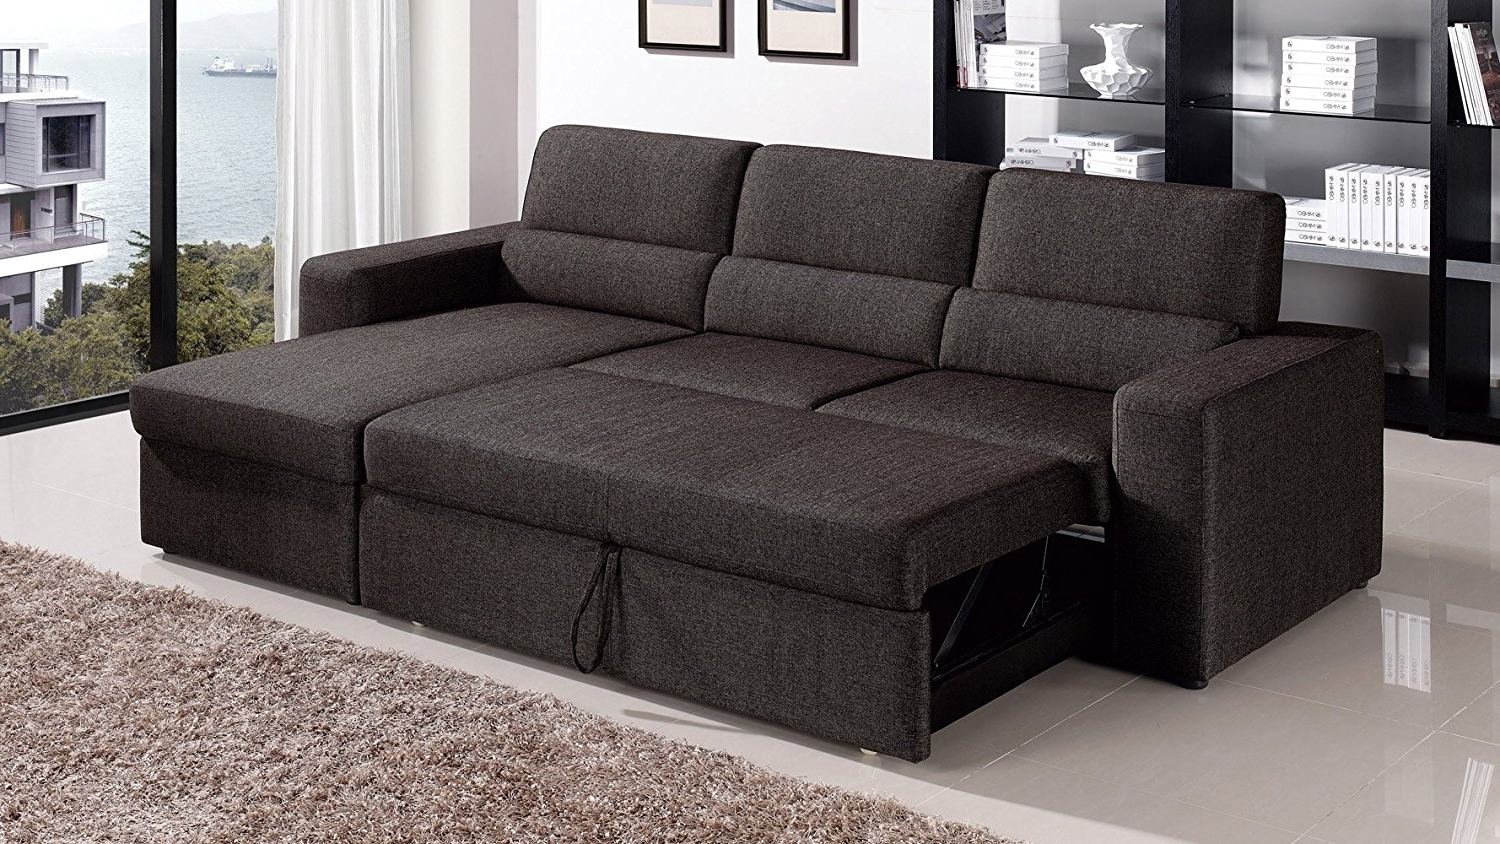 Amazon: Black/brown Clubber Sleeper Sectional Sofa – Right Throughout Well Known Sleeper Sofas With Chaise And Storage (View 8 of 15)